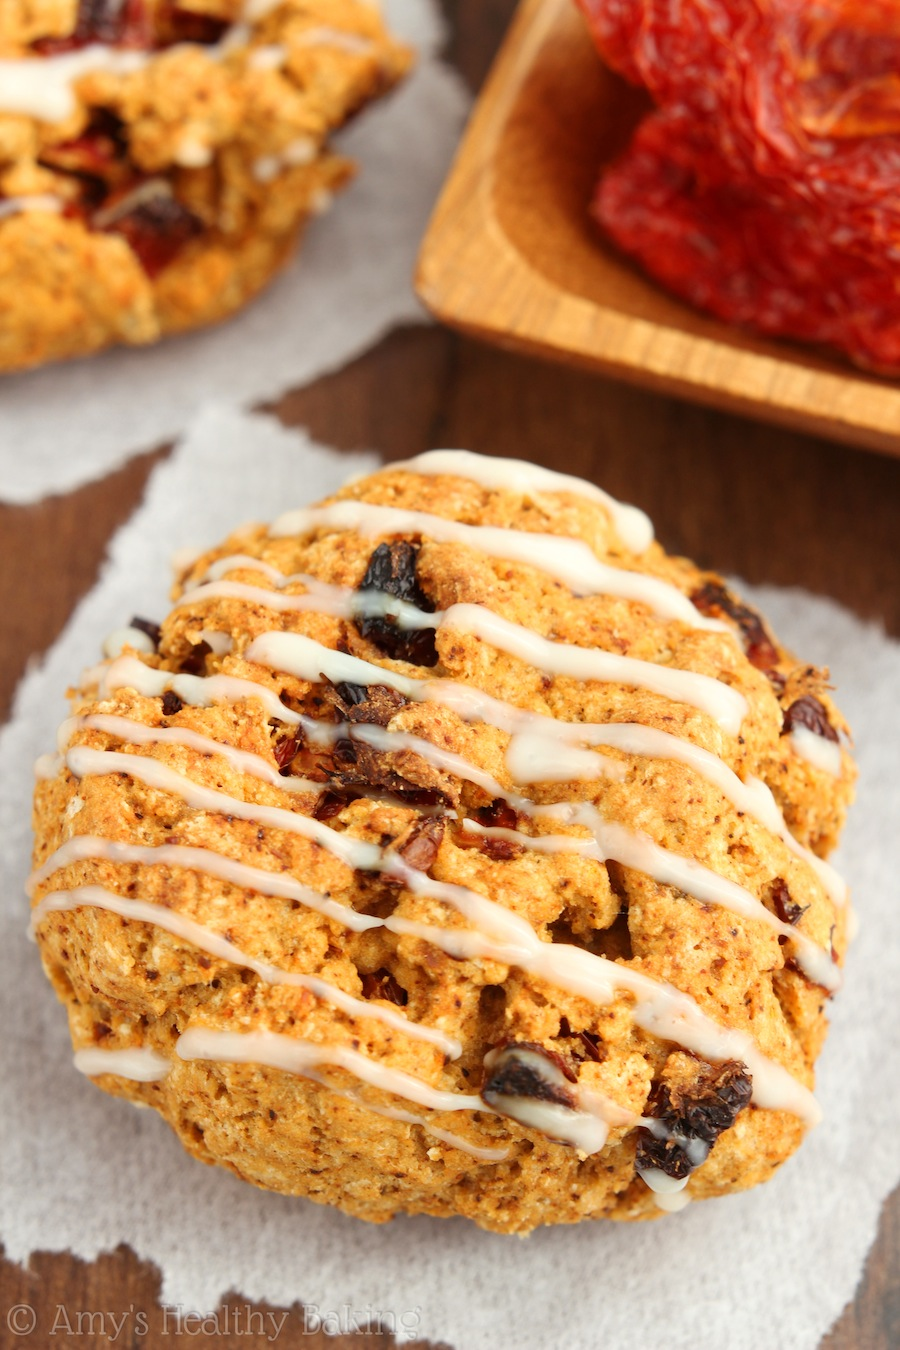 Sun Dried Tomato Chili Scones -- SO soft & tender! My family declared these the best scones they've ever had!